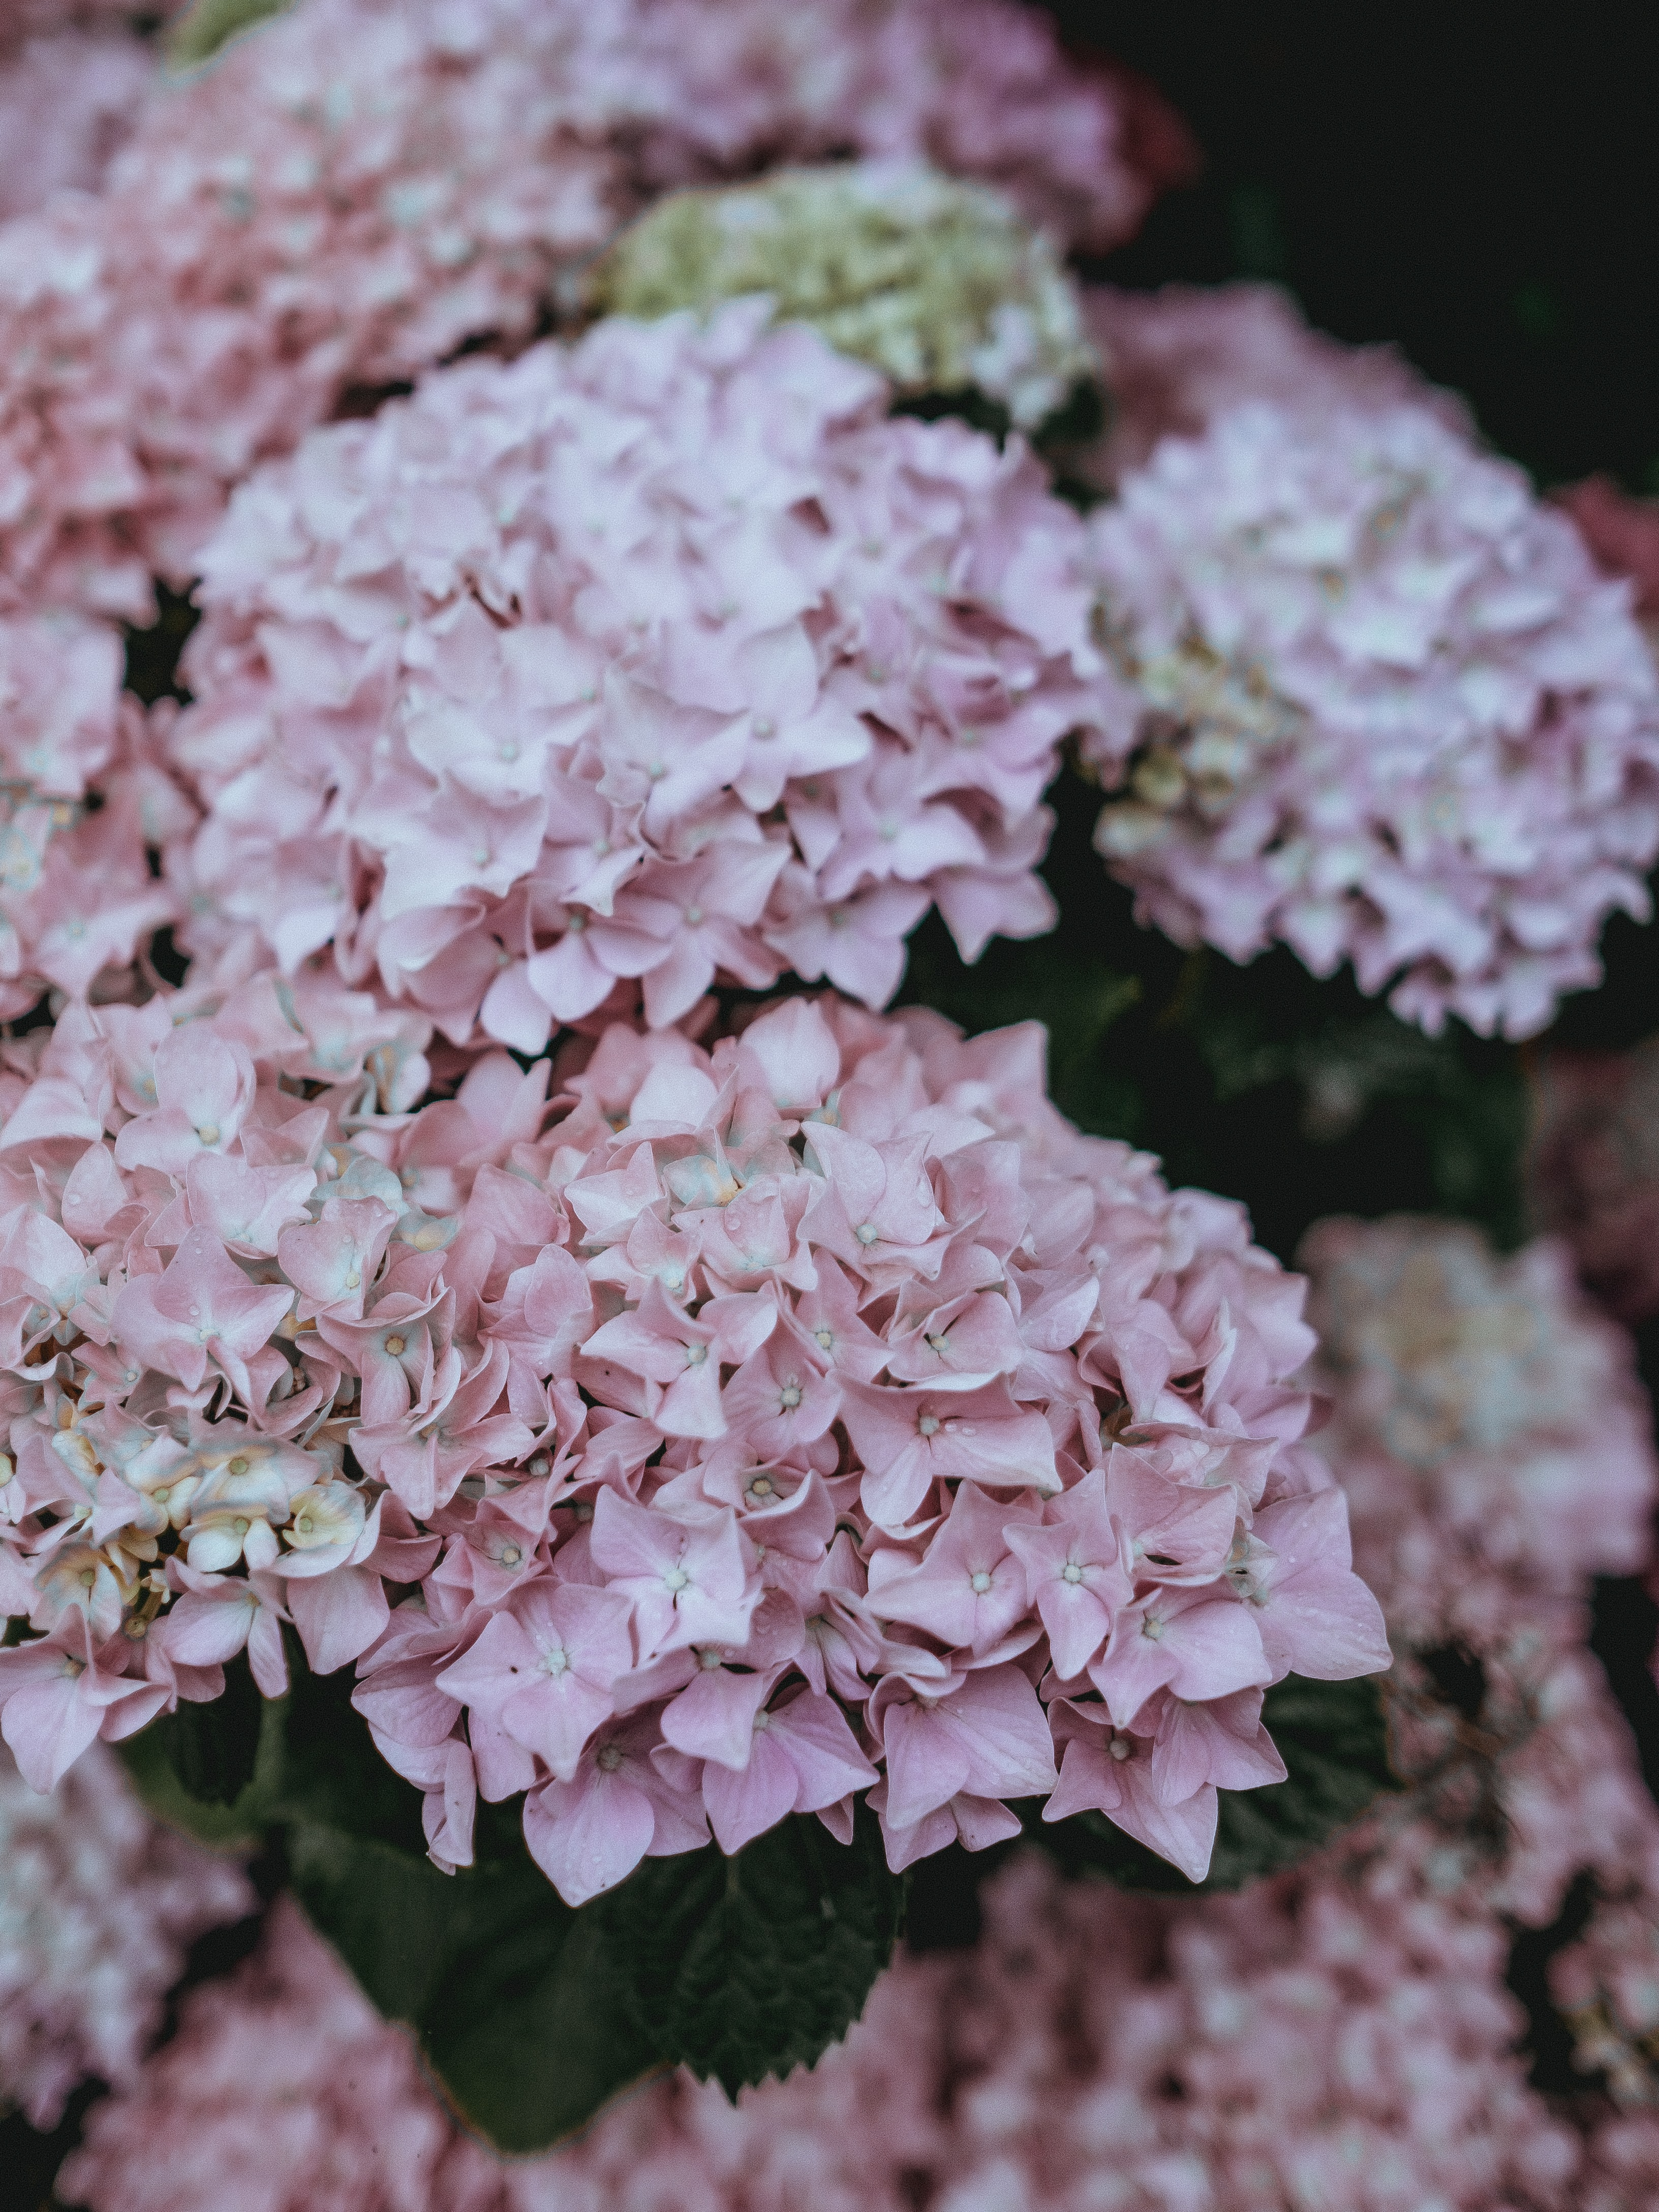 closeup photo of pink petaled flowers